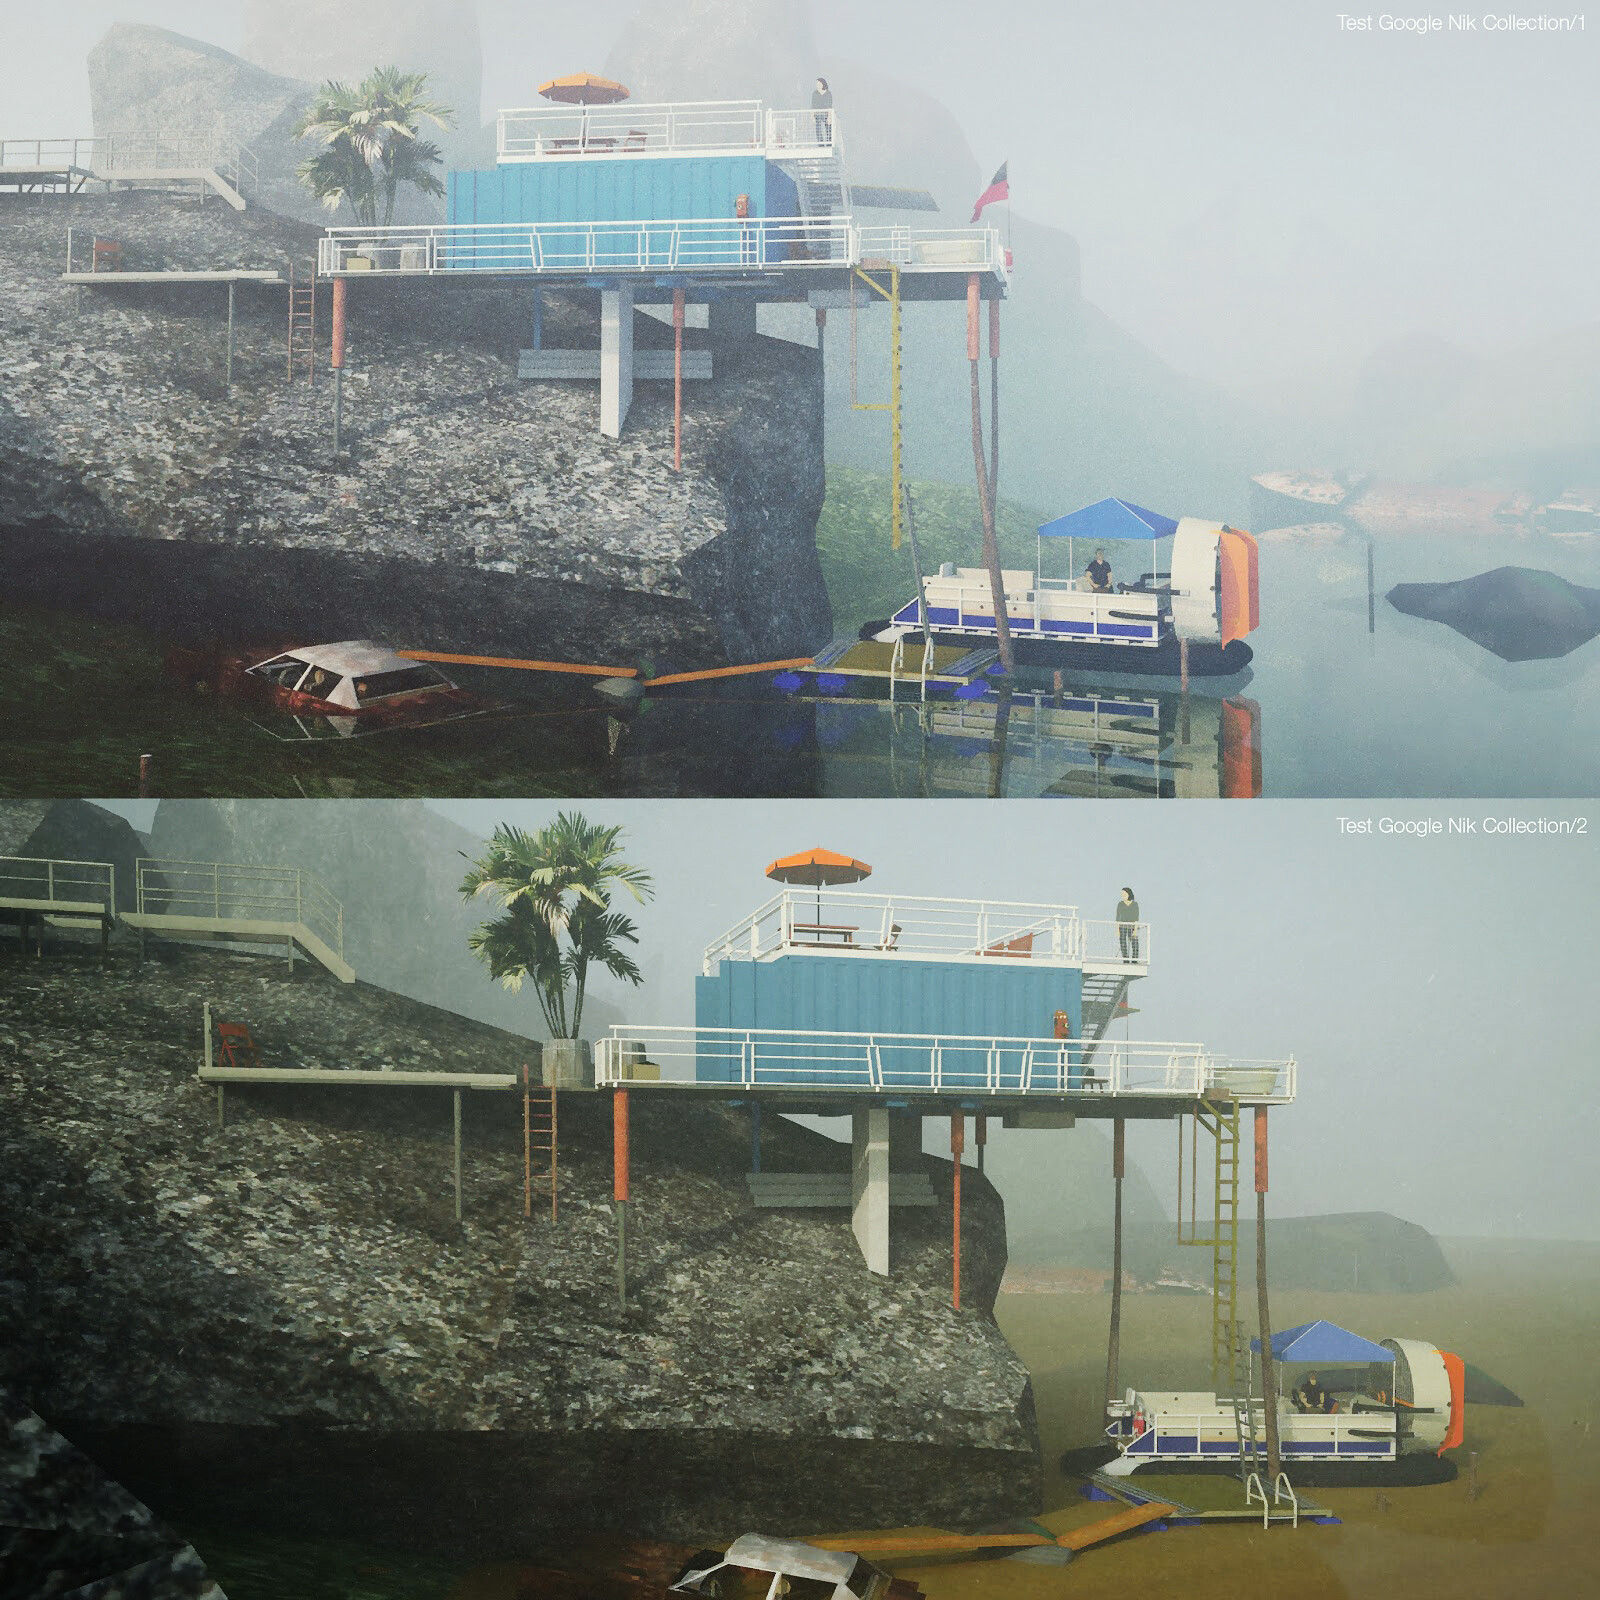 Rock container house + hovercraft deck...